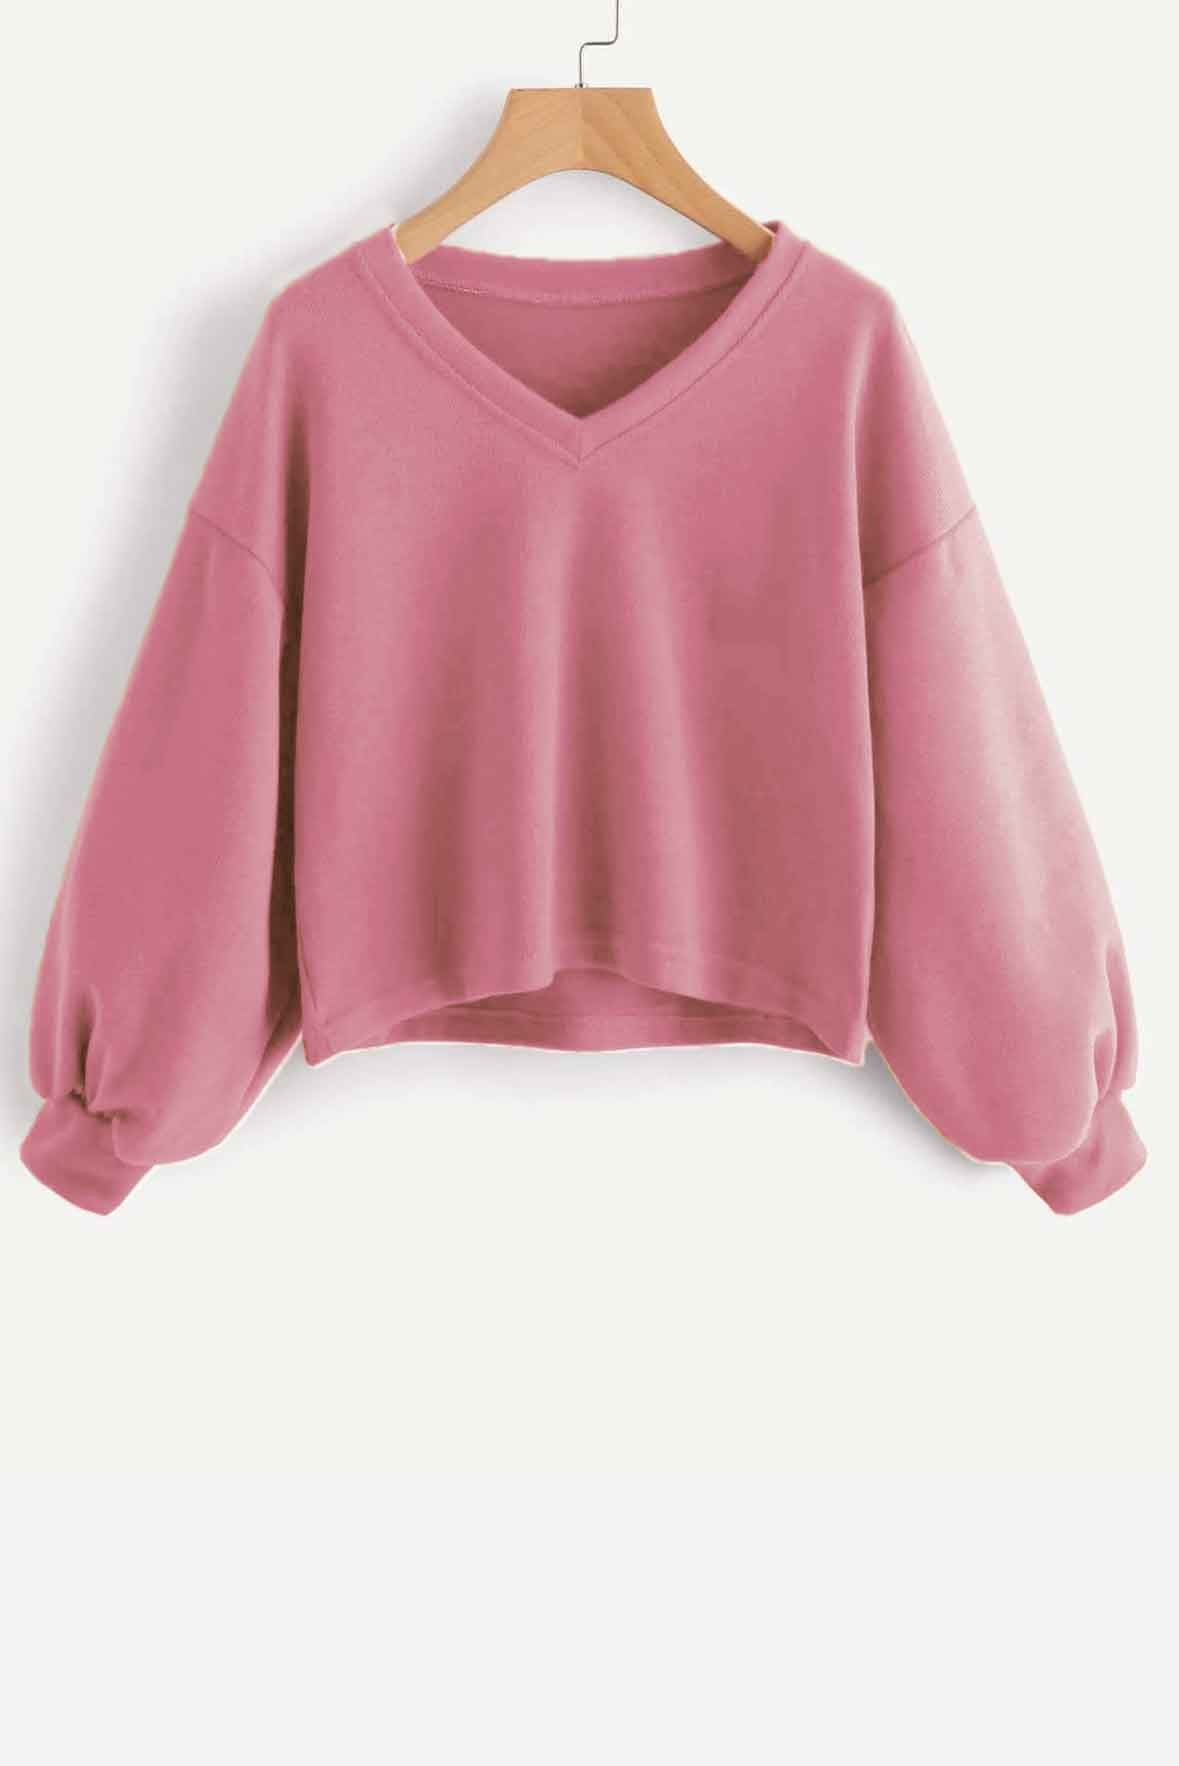 Solid Casual V neck Lantern Sleeve Sweatshirt Pink